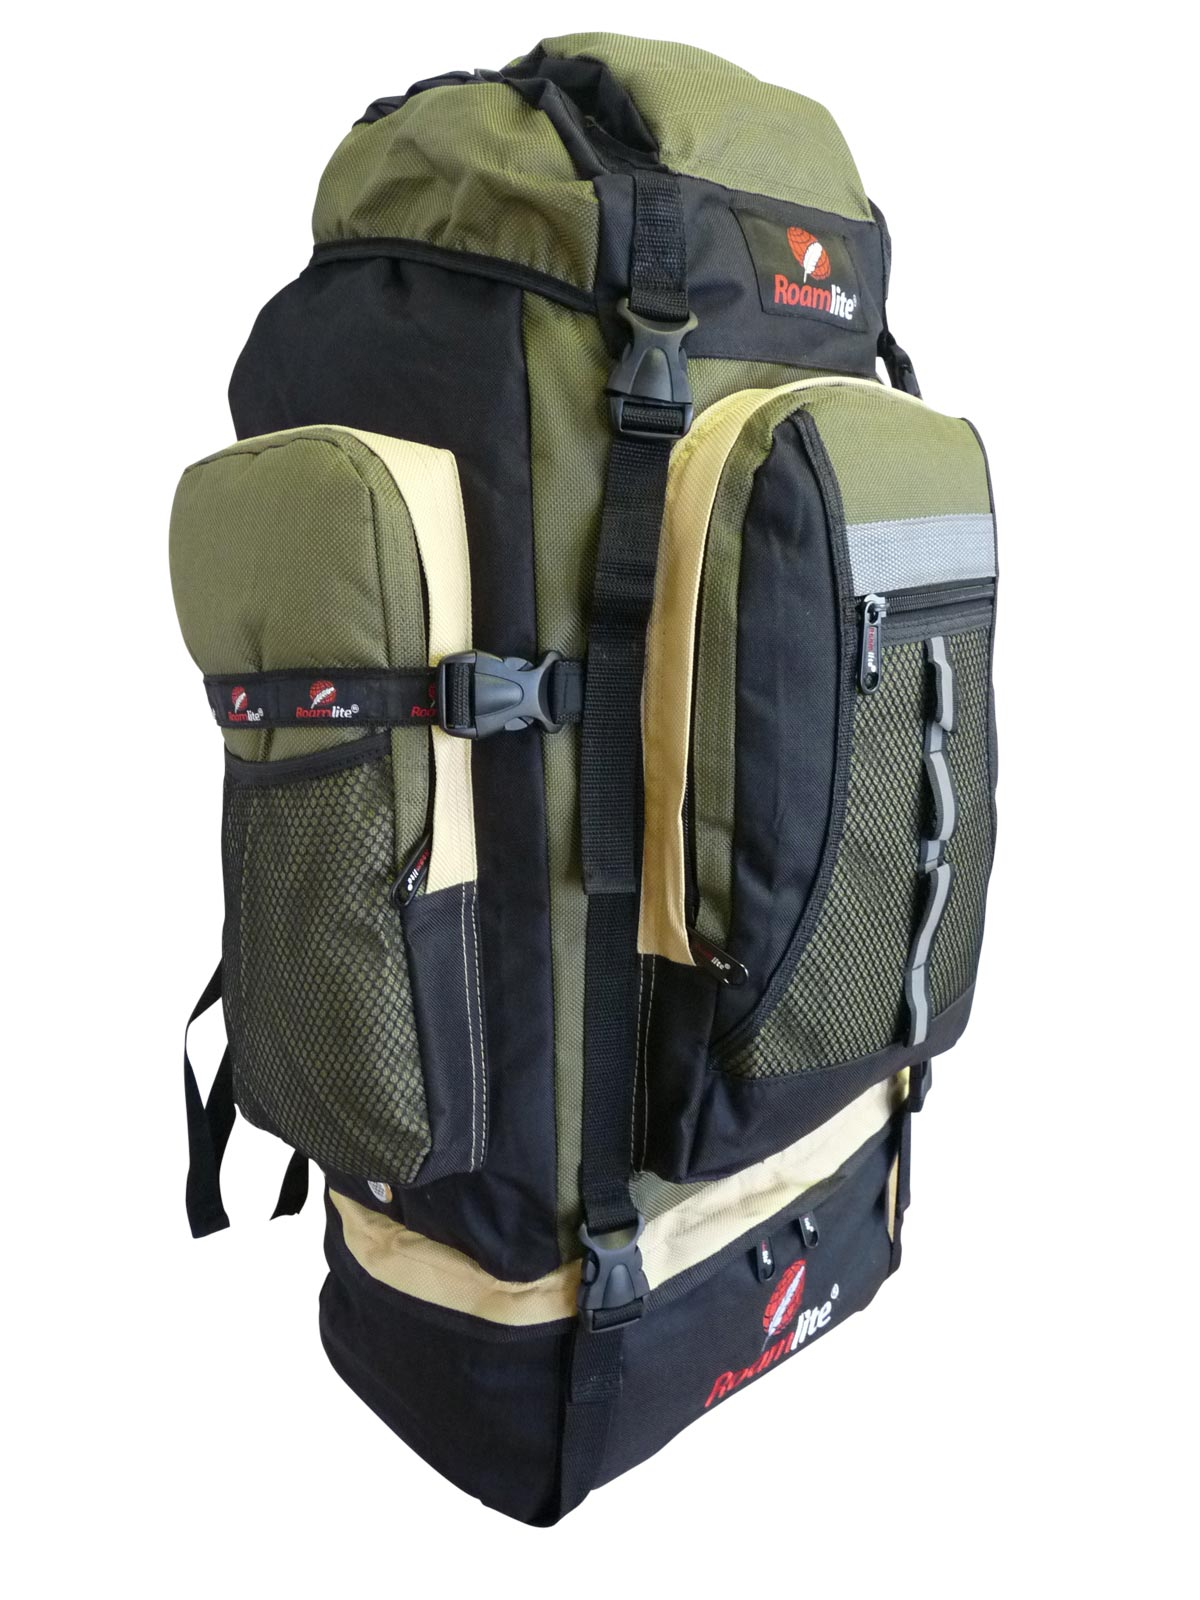 Festival Camping Backpack Bag RL02KGrs